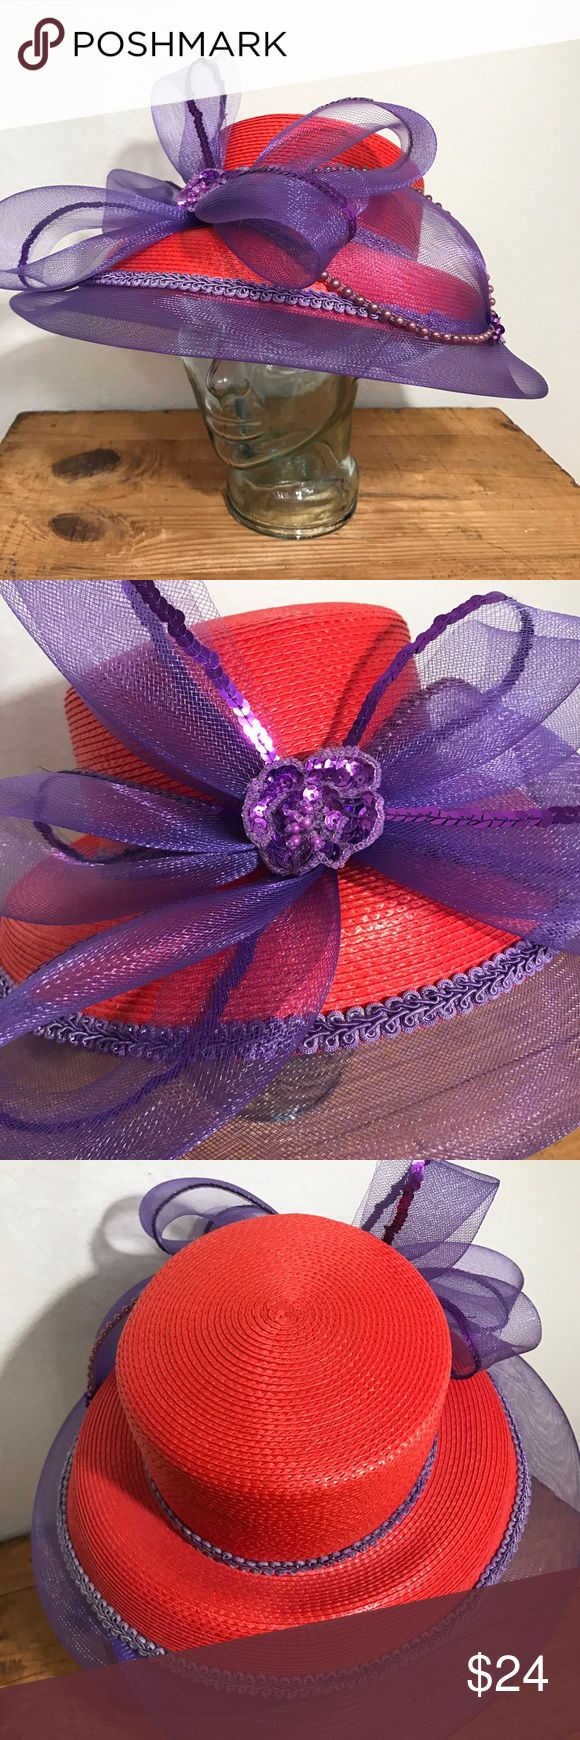 RED MEDIUM BRIM STRAW HAT WITH Purple NETTING Bow RED MEDIUM BRIM STRAW HAT ADORNED WITH Purple NETTING Bow & Sequins SOCIETY LADY Perfect for the Red Hat Society One Size fits most   Please see photos as we do consider them to be a part of the description. Accessories Hats